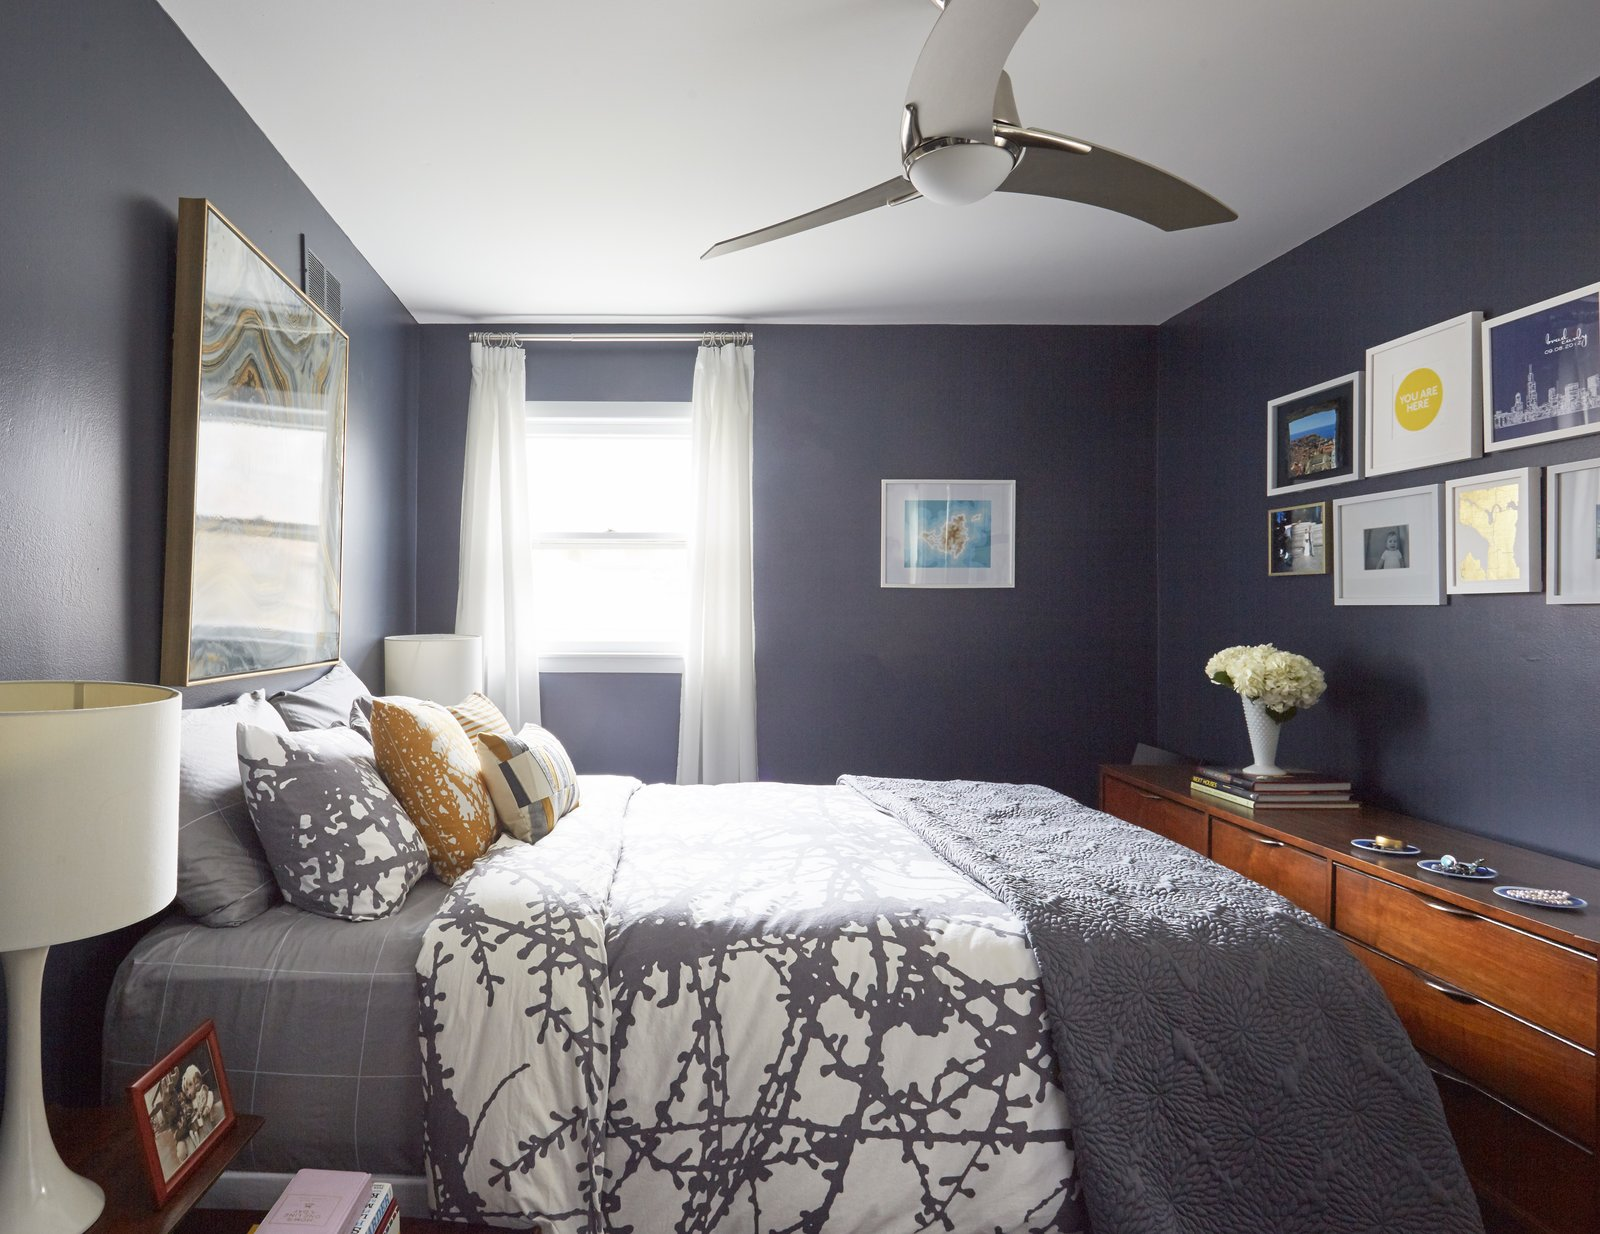 Though you cannot see in this photo, they added an extra closet in the bedroom to house Carly's vintage clothing collection. There are two other bedrooms on this upper floor.